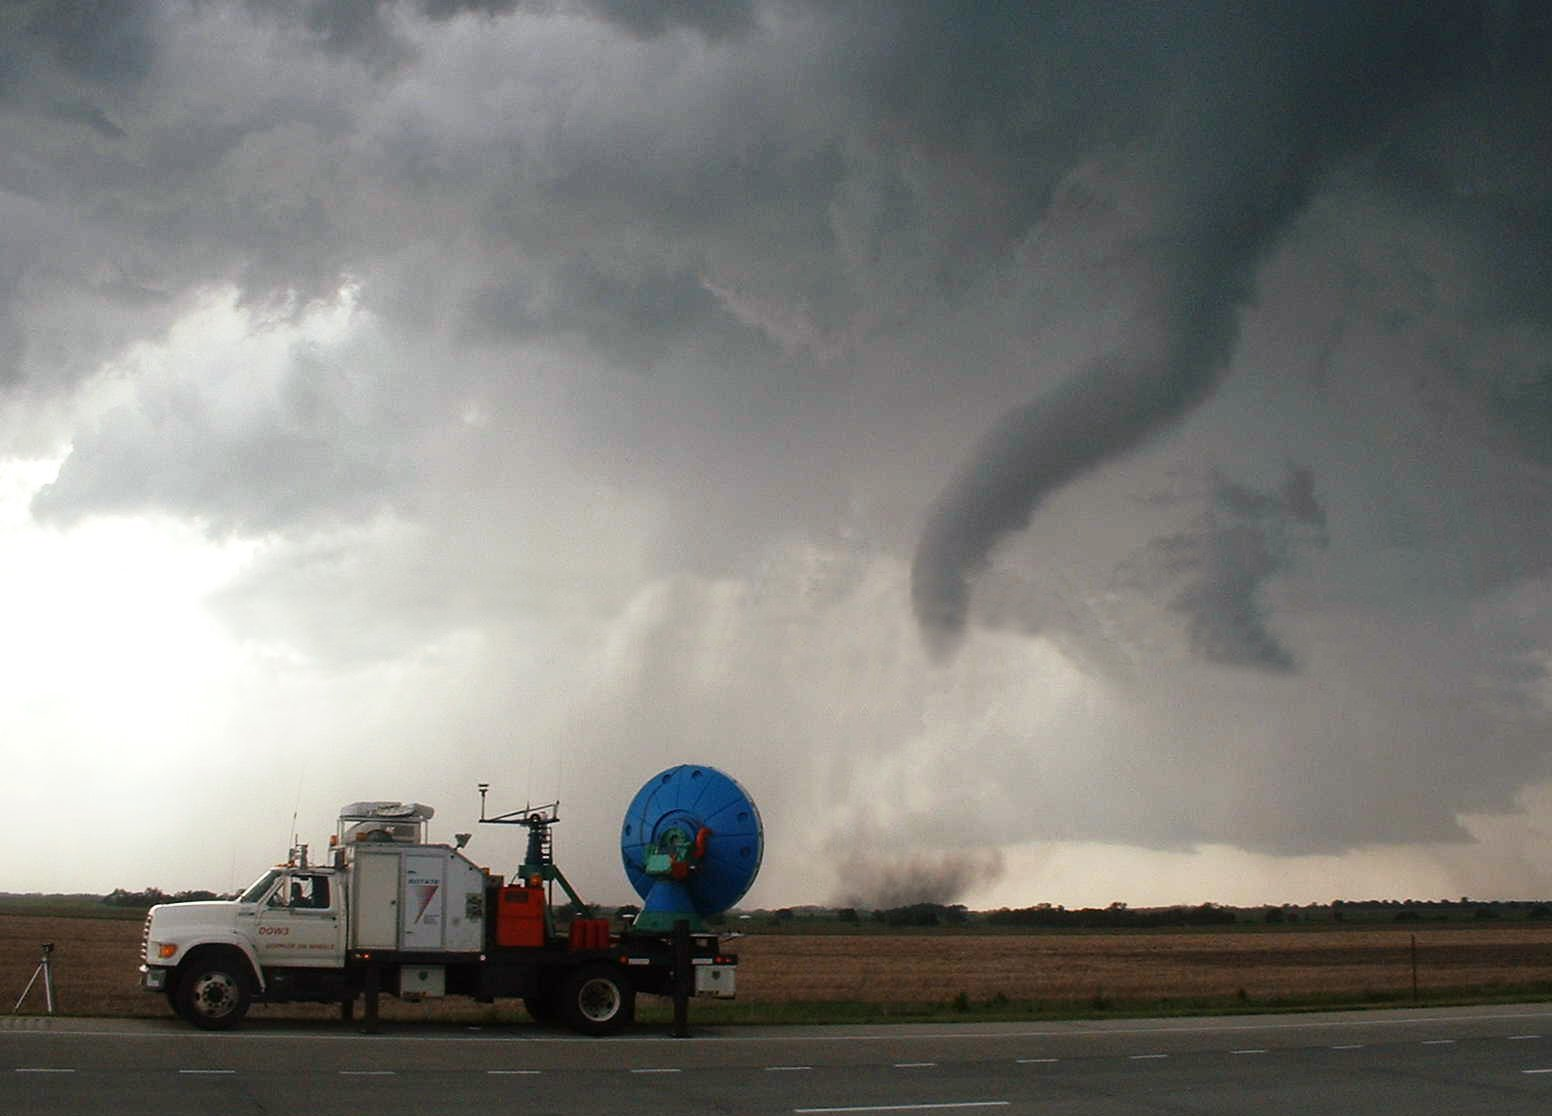 File:Tornado with DOW.jpg